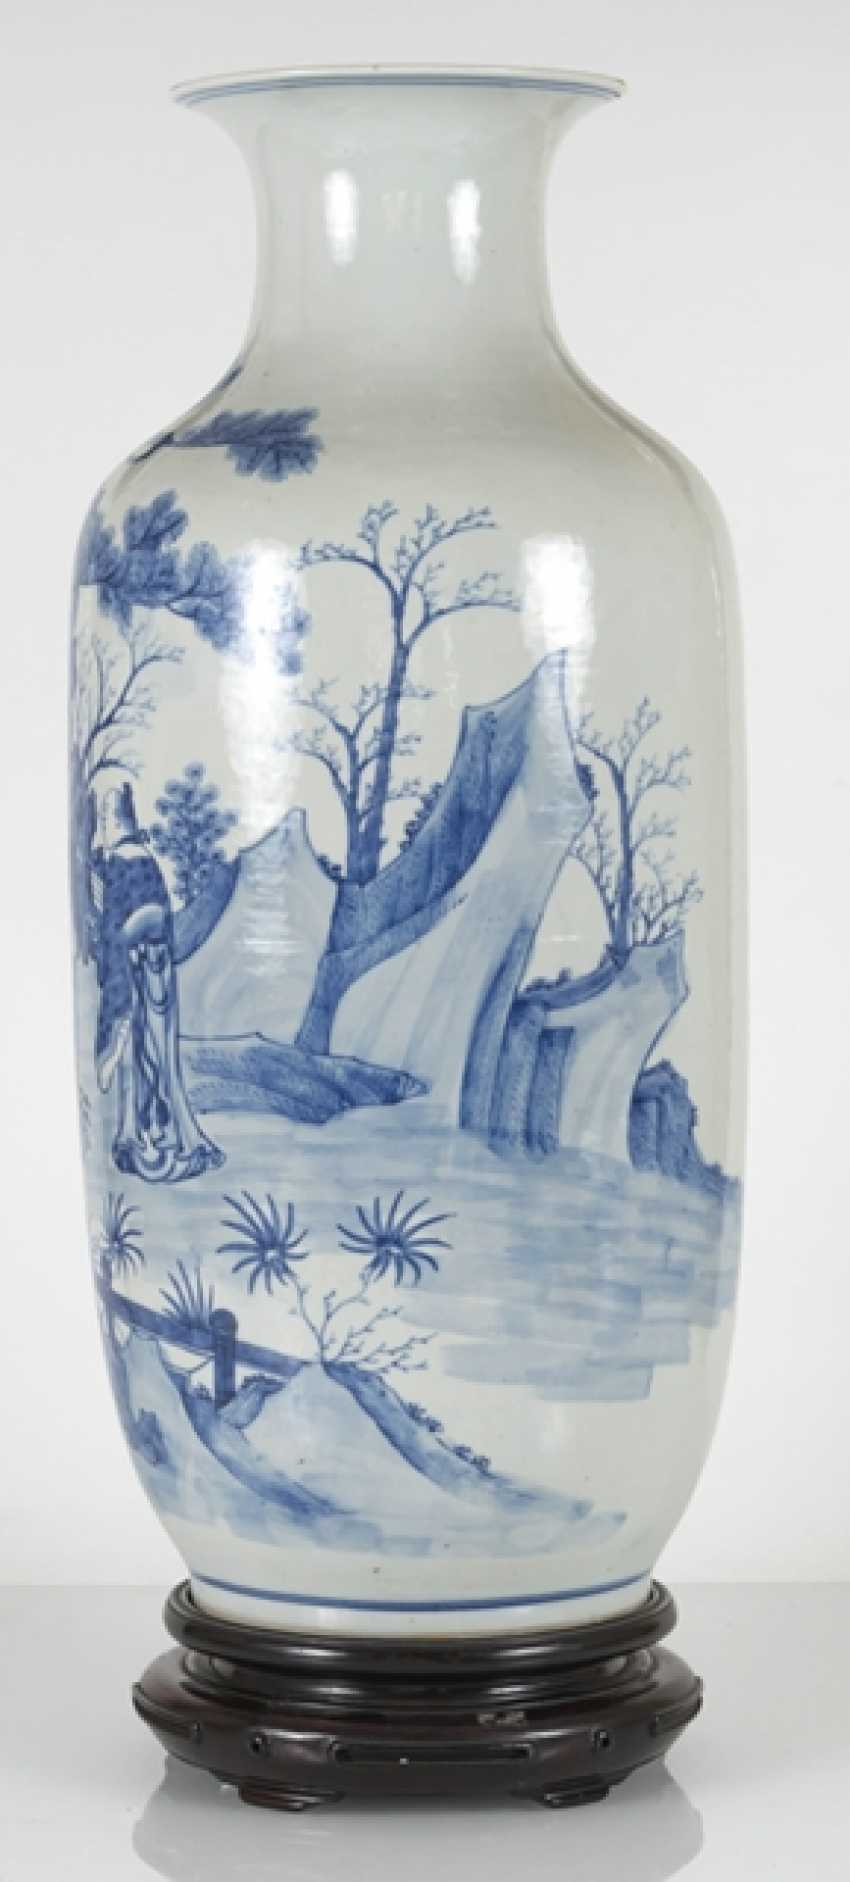 Under glaze blue decorated floor vase made of porcelain with a depiction of Su Shi and Qin Guan - photo 3